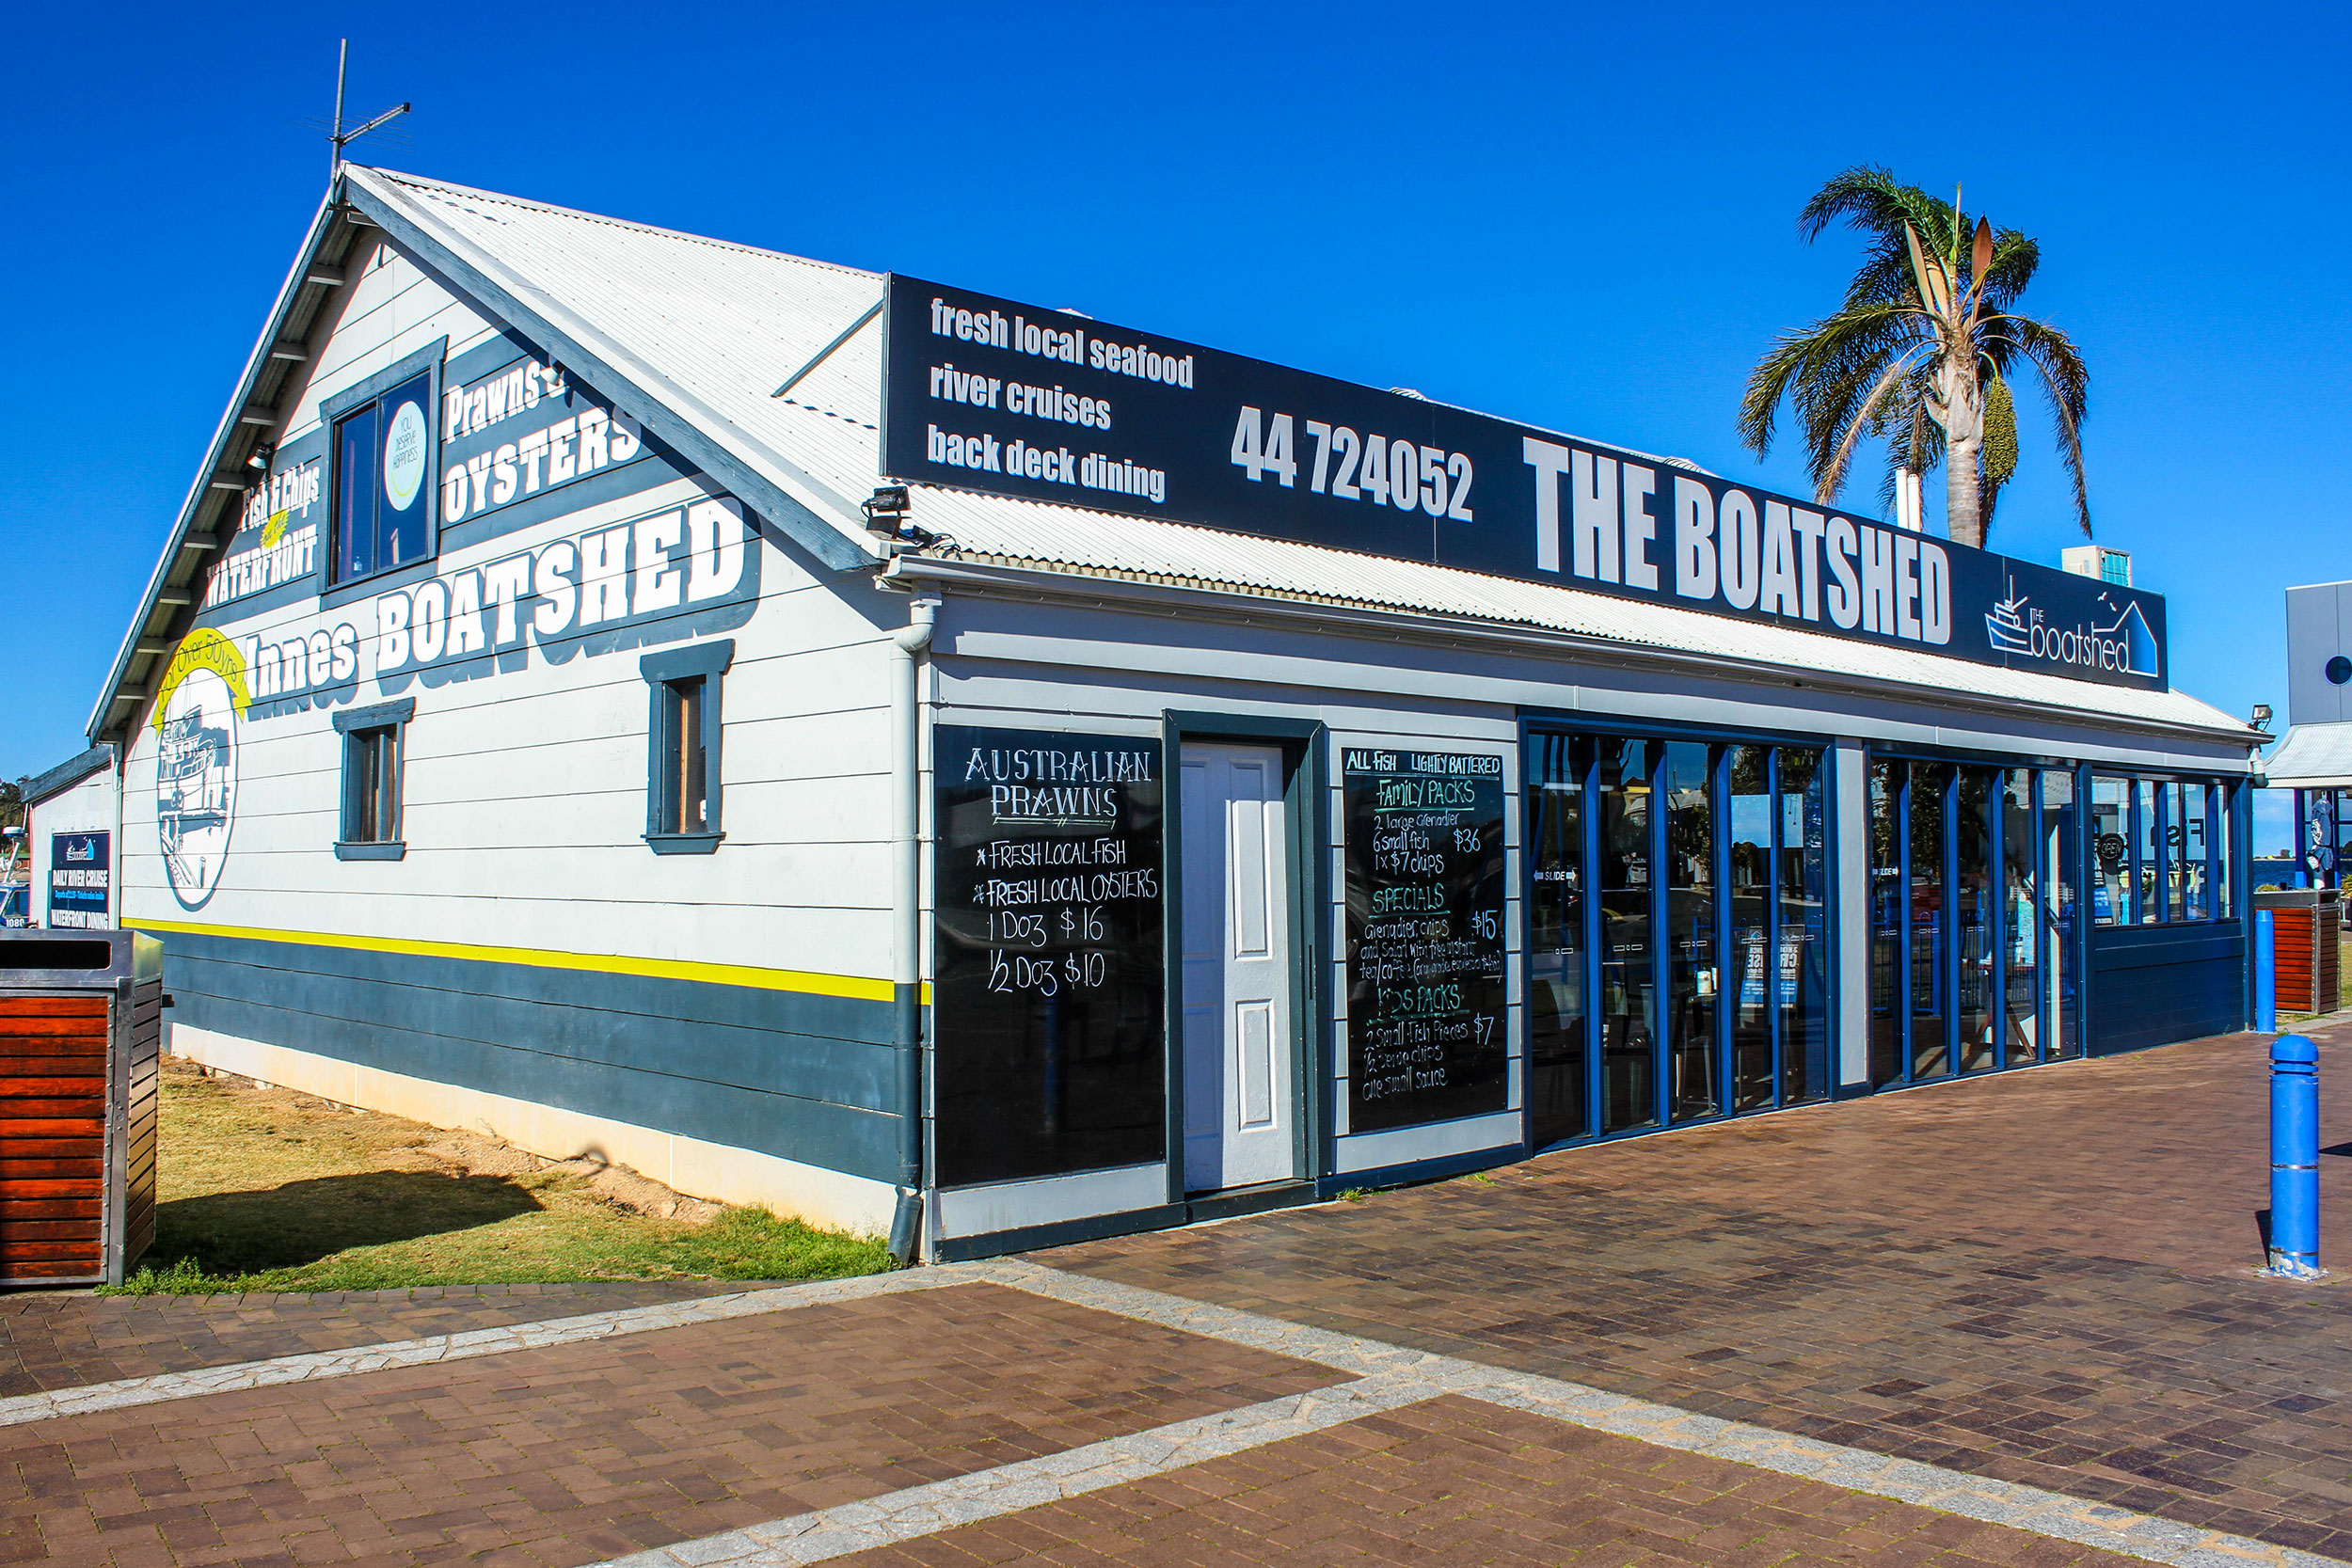 Name : The Boatshed – Batemans Bay, NSW